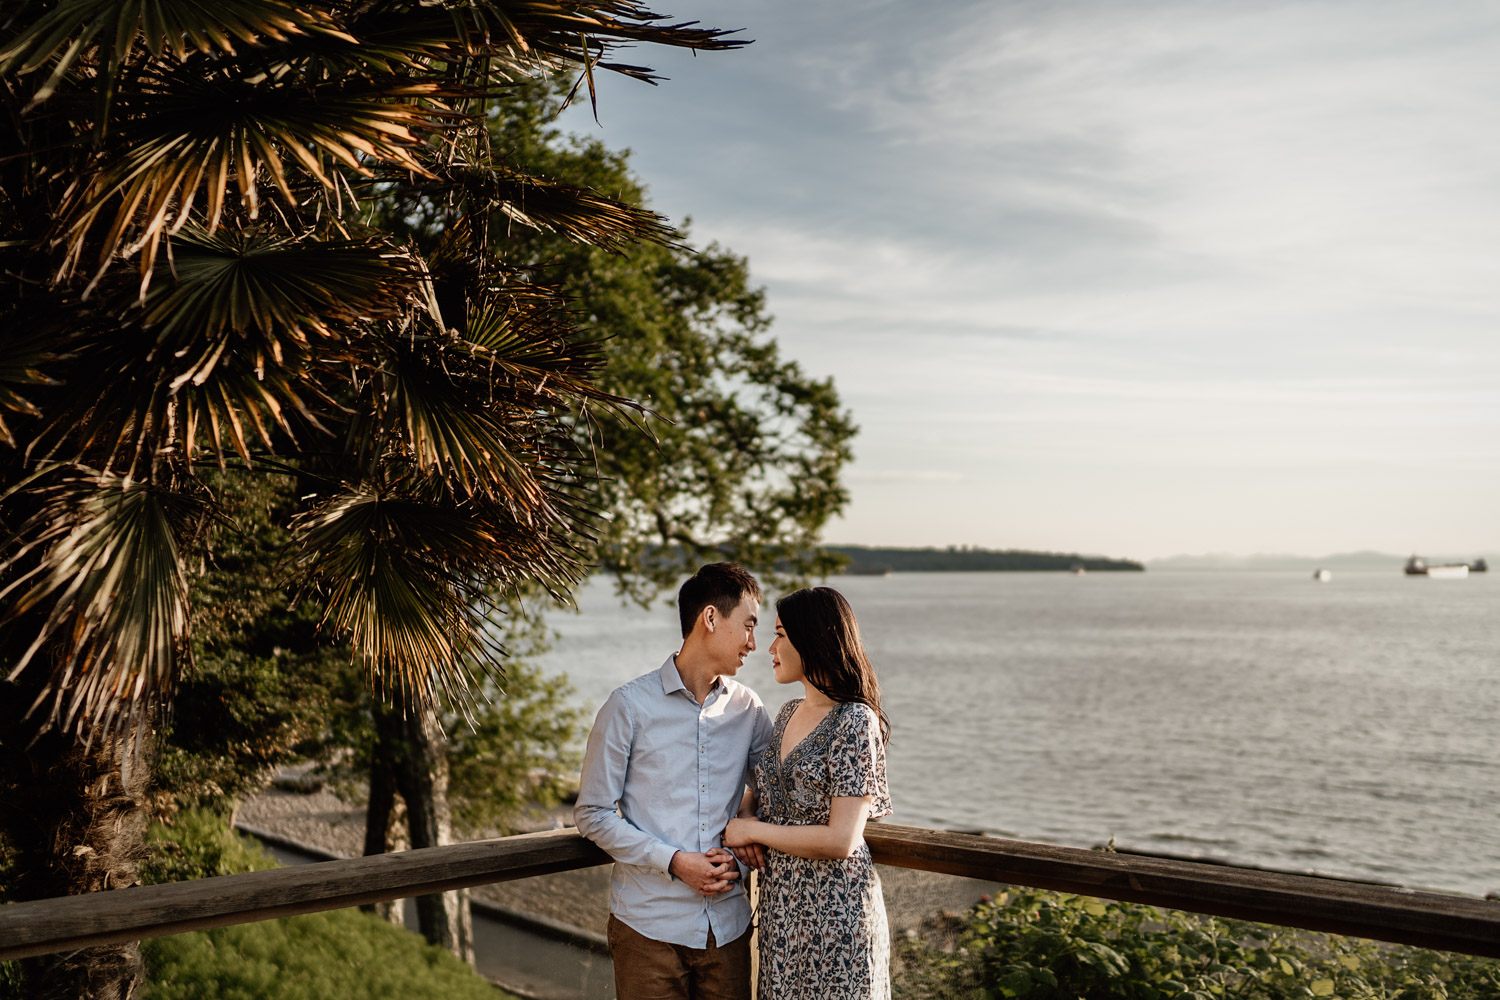 stanley park engagement photography in vancouver bc during sunset or golden hour at third beach